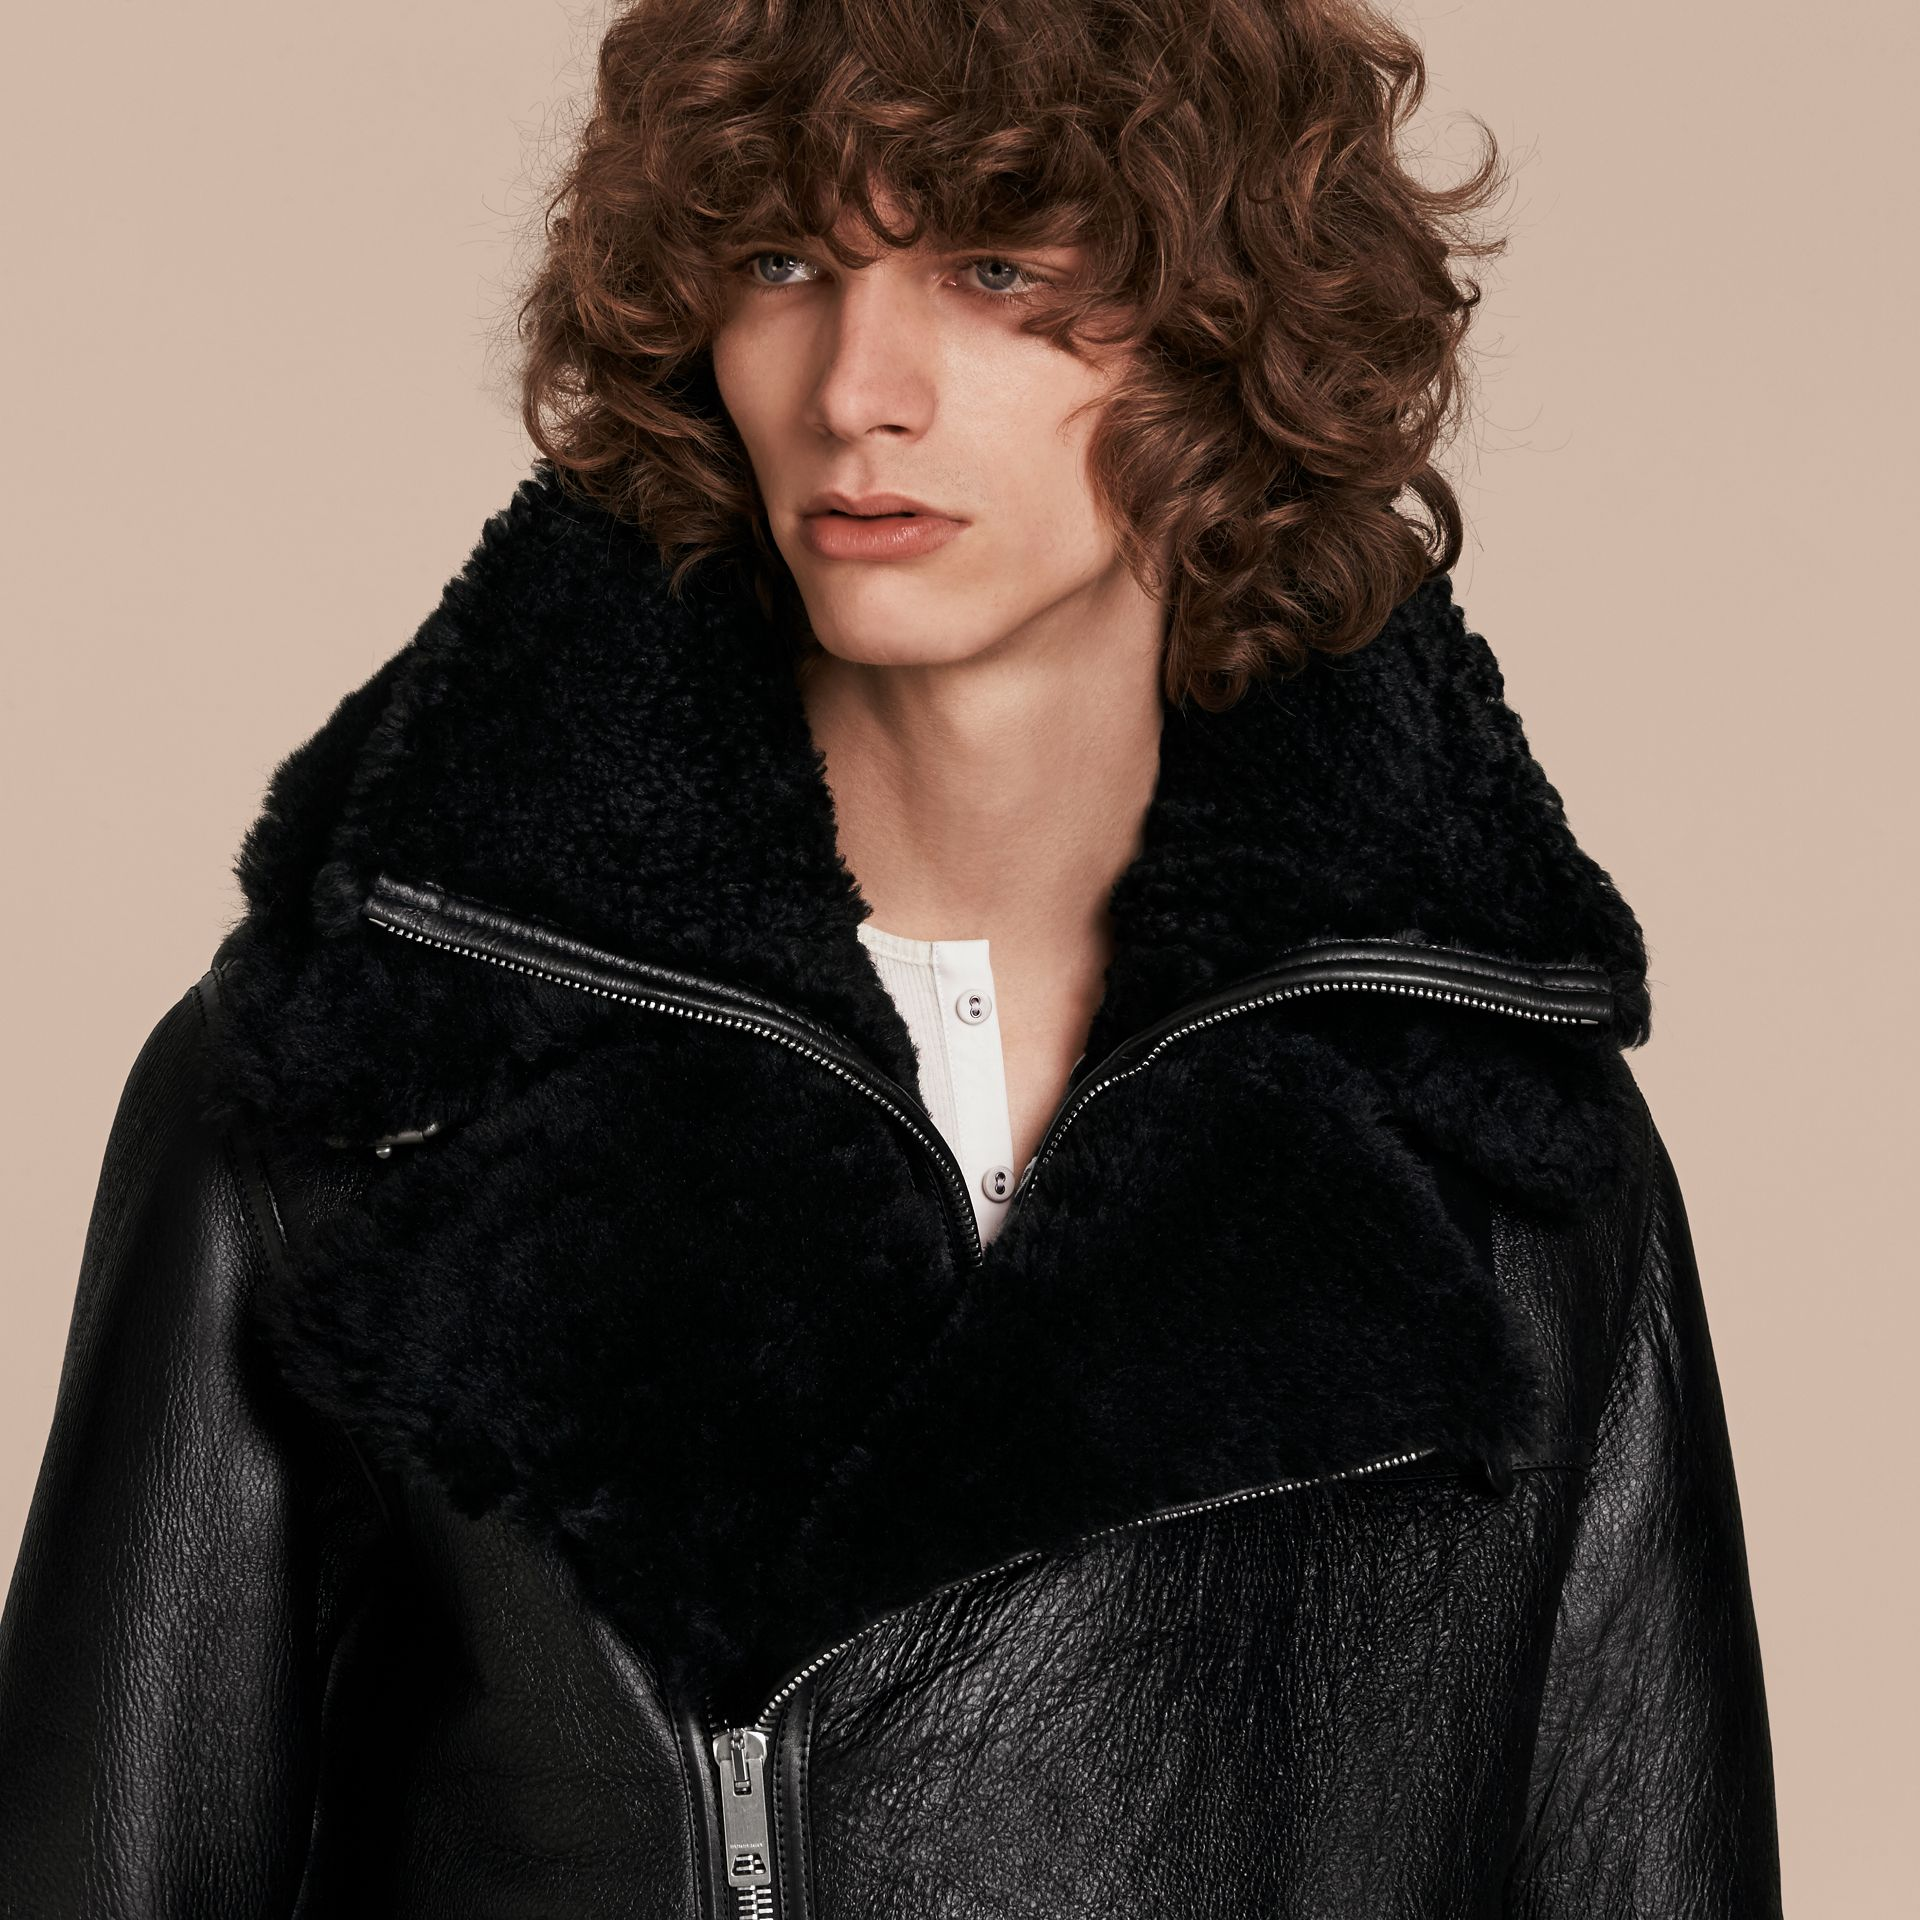 Black Long-line Shearling Aviator Jacket with Zip-out Bib - gallery image 6